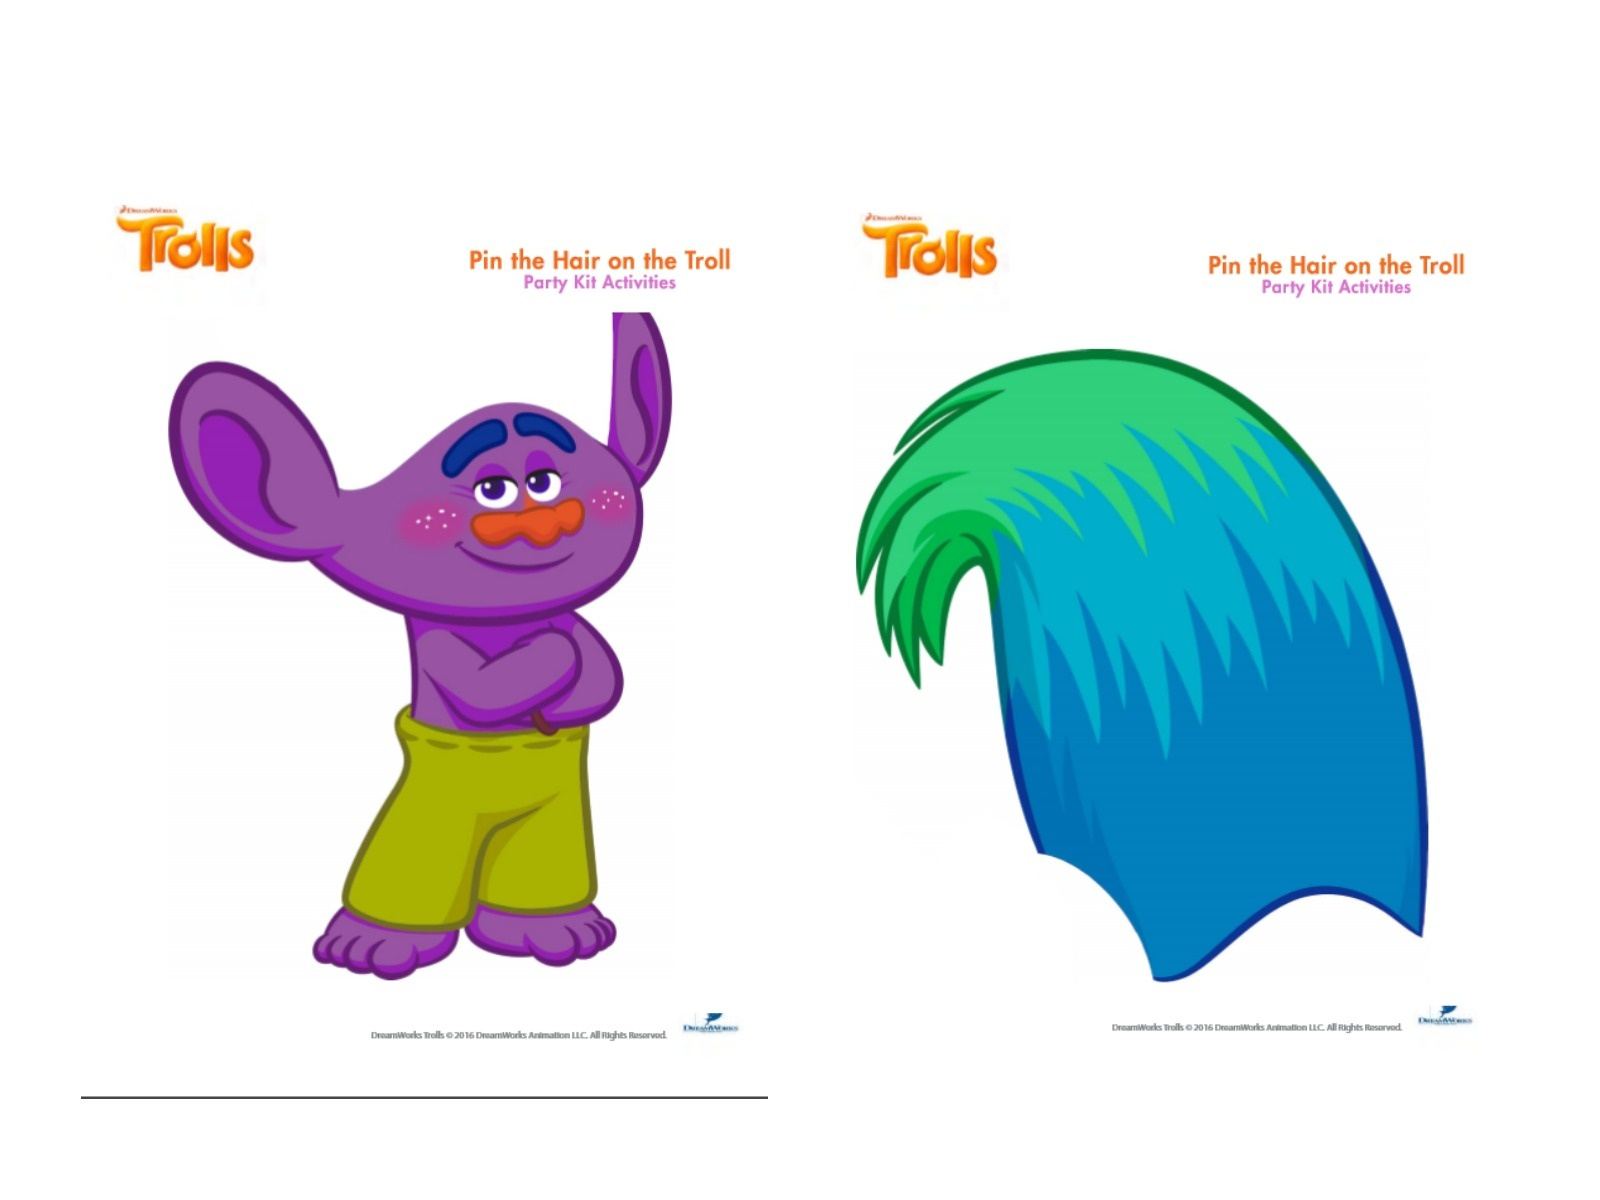 Free Trolls Photo Booth Props Printable